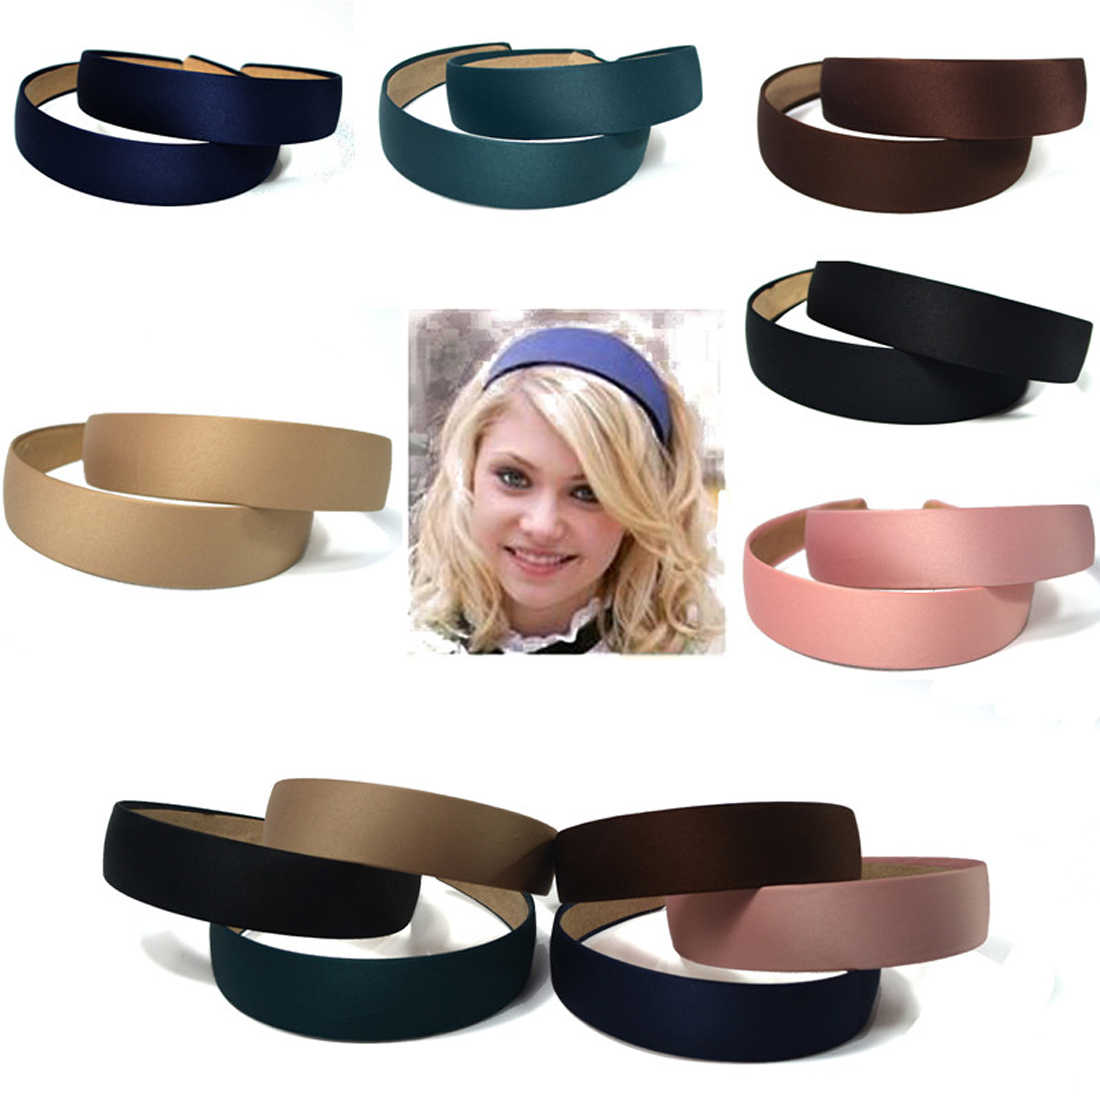 1Pcs Solid Color Fashion Women Canvas Wide Headband Hair Band Headwear Hairbands Boutique Hair Hoops